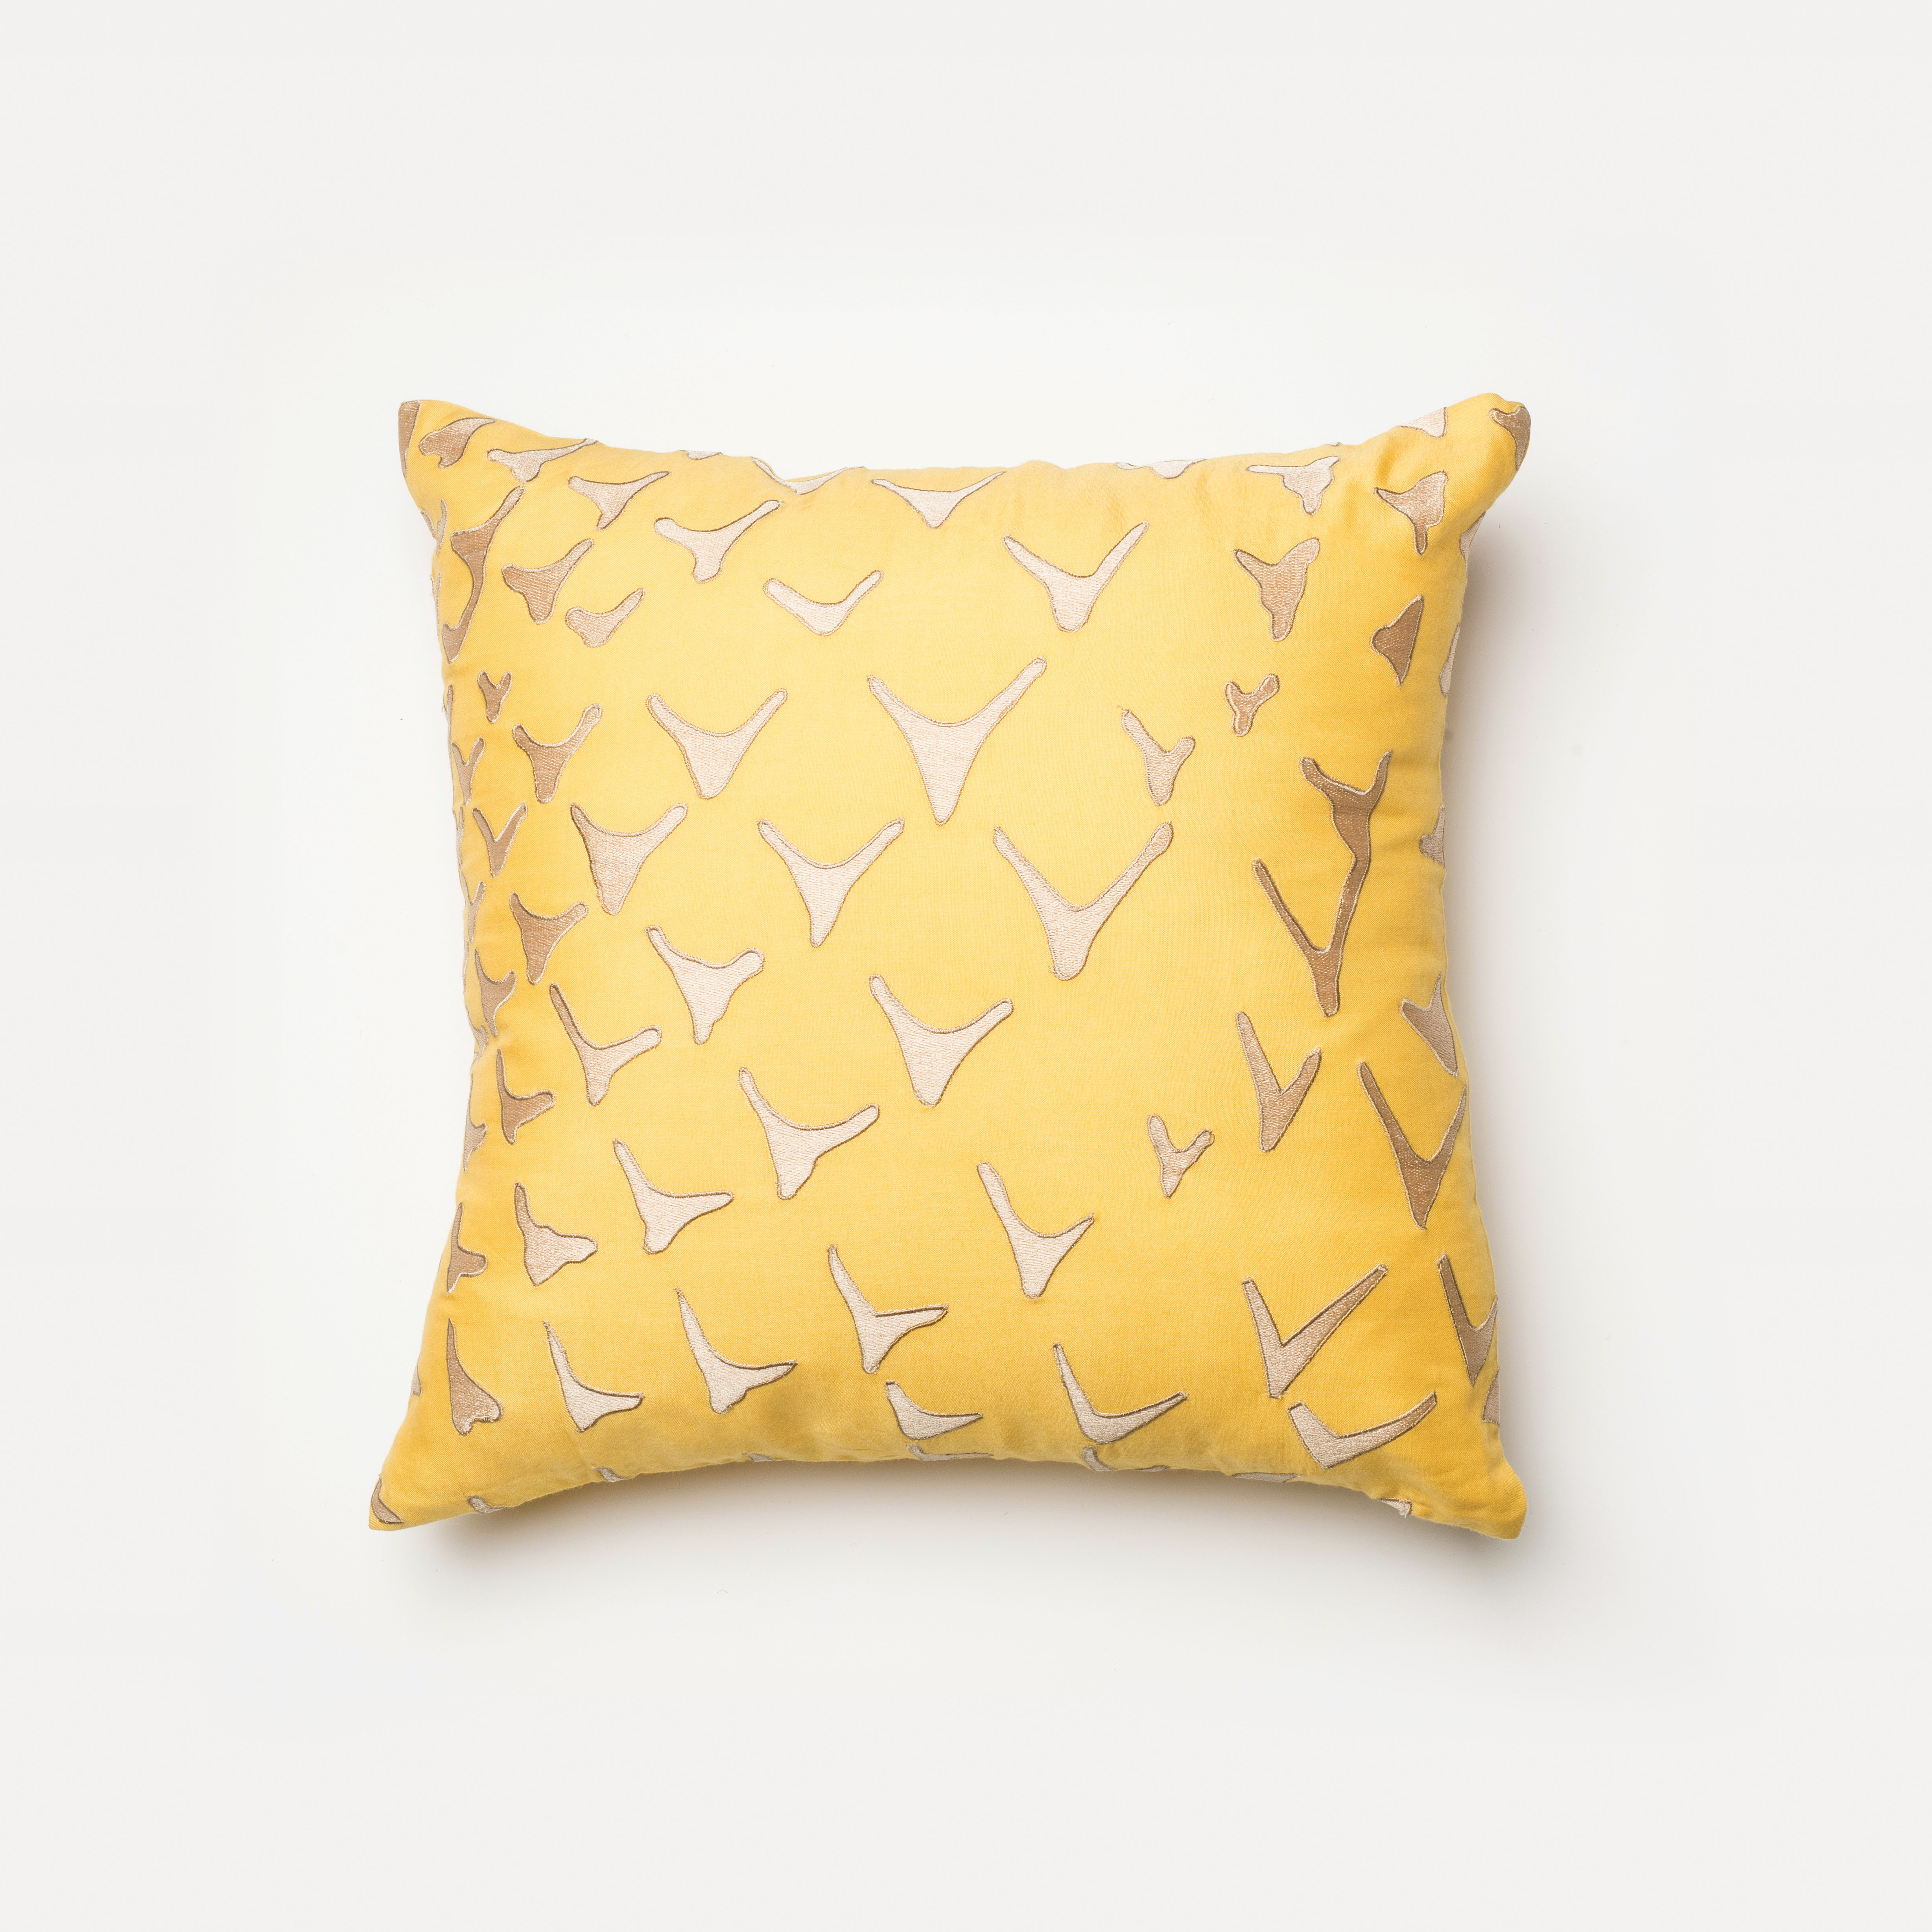 Decorative Pillows Kmart : Furniture of America Yellow Hera Accent Pillow - Home - Home Decor - Pillows, Throws ...